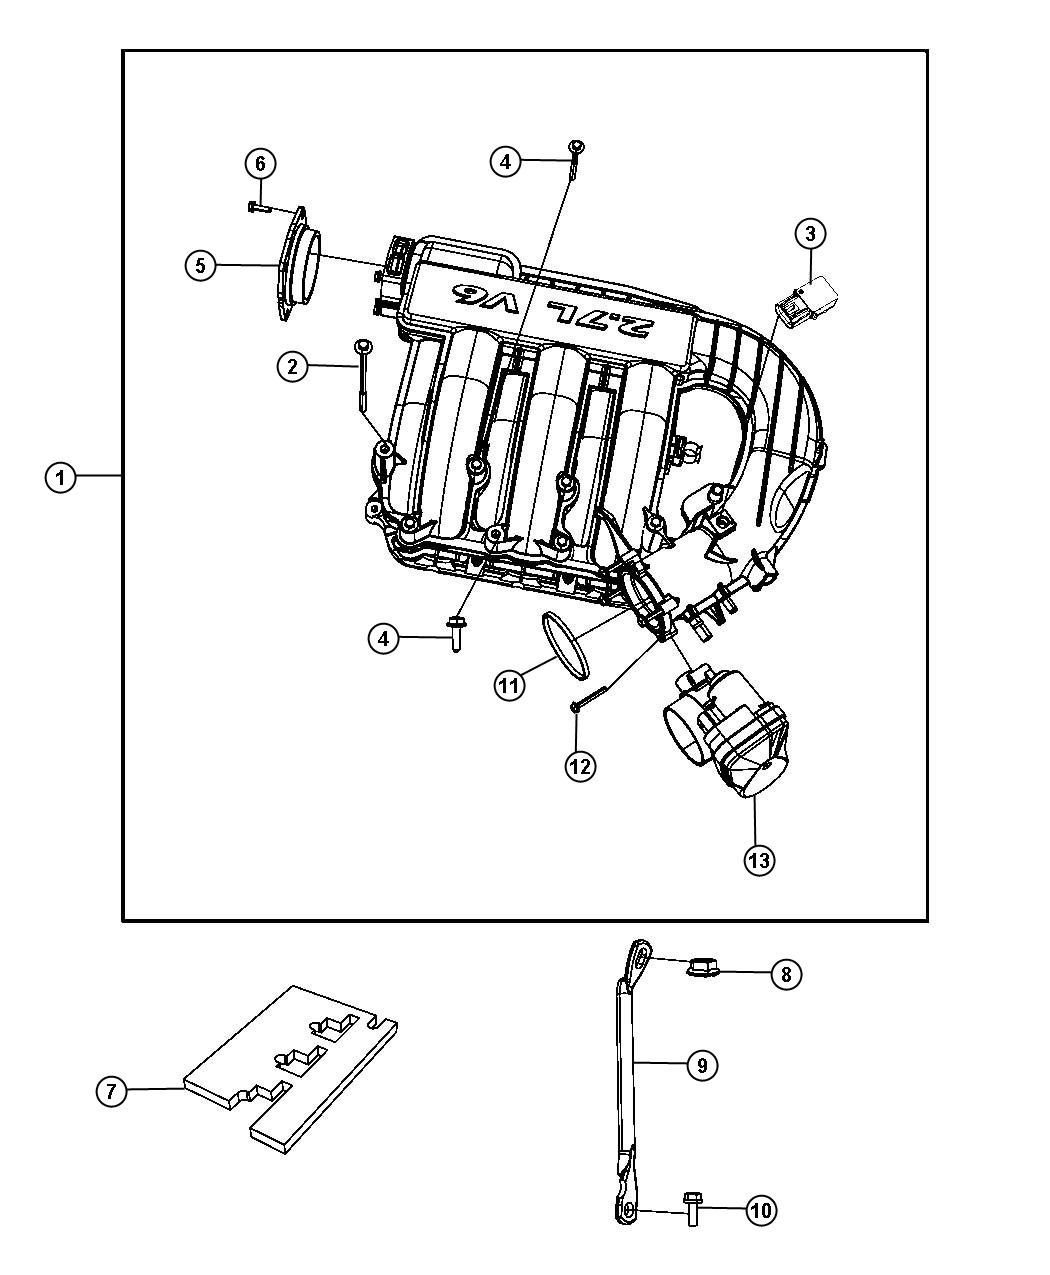 24 Valve Dohc V6 Engine Diagram